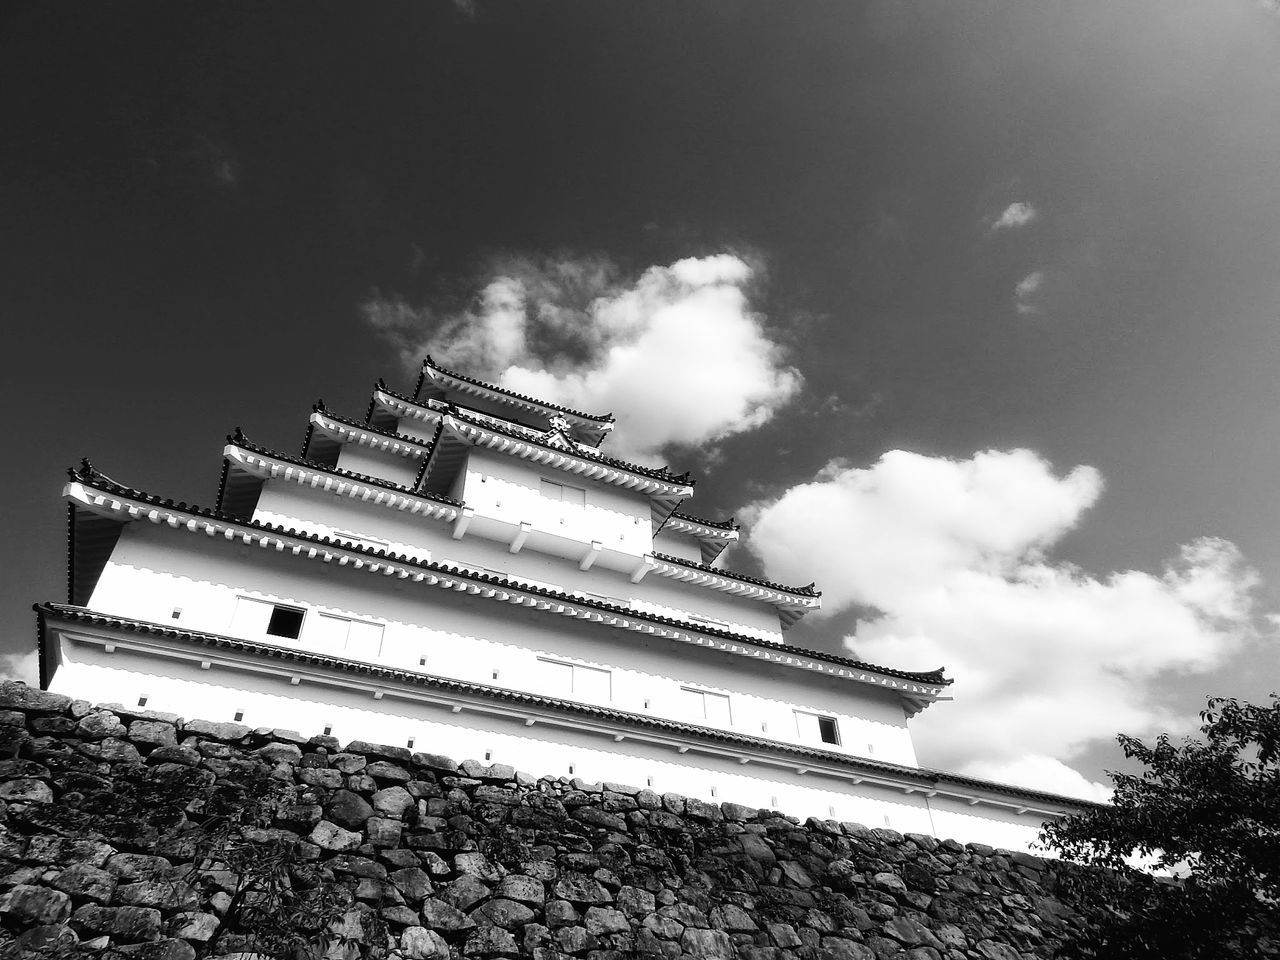 Monday Monochrome 🏯『 鶴ヶ城 会津若松 福島 』Tsuruga Castle in Aizuwakamatsu, Fukushima-prefecture. Built circa 1384 and in use till year 1868.. Tenshu (highest floor) of the castle was re-constructed in 1965. 🏯| 鶴ヶ城 会津若松城 日本の城シリーズ Tsuruga Castle Aizuwakamatsu Japanese Castle Ancient Architecture Japanese Architecture Castle View  Low Angle Shot Fortress Historical Landmarks Historical Site History Through The Lens  Built Structure Black And White Monochrome Noiretblanc モノクロ EyeEm Best Shots - Black + White EyeEm Best Shots - Architecture EyeEm Gallery From My Point Of View